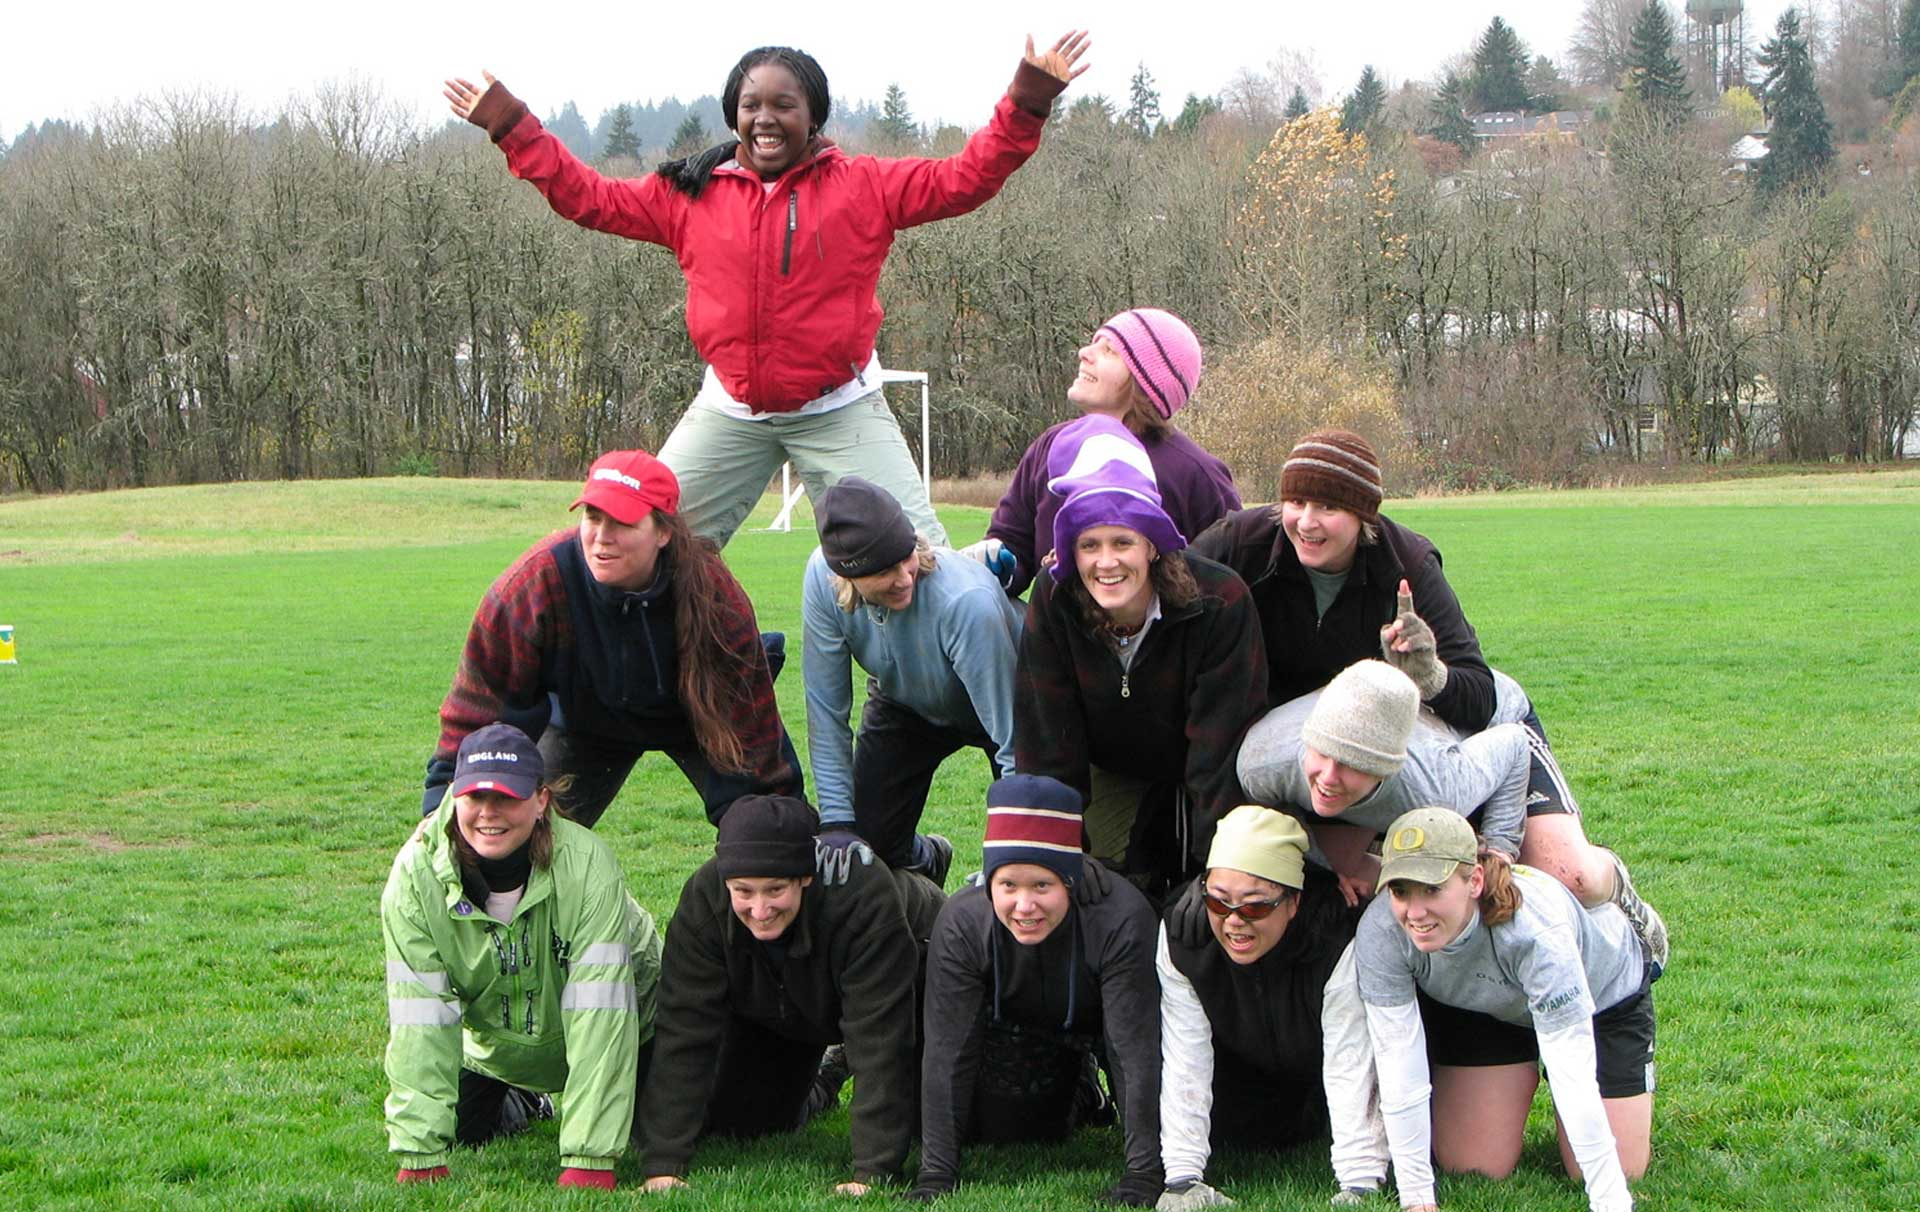 A group posing in a pyramid on a football field.